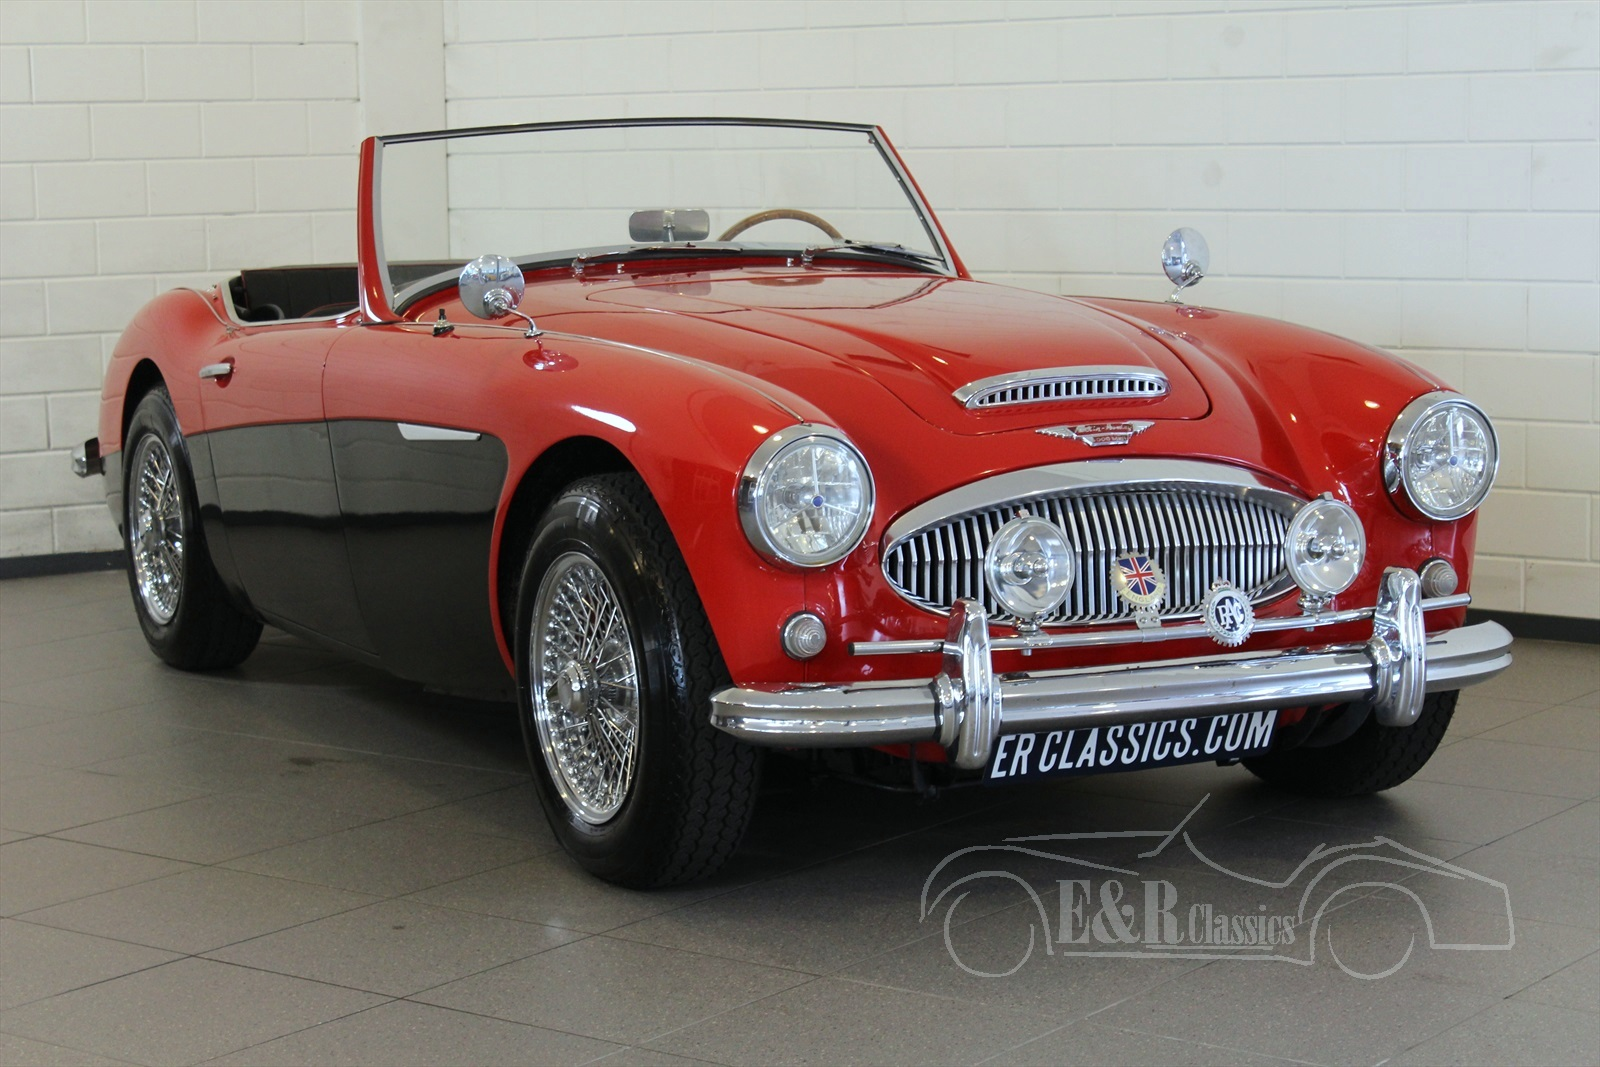 1968ed7221d Austin Healey 3000 Big Healey For Sale at E   R Classic Cars!